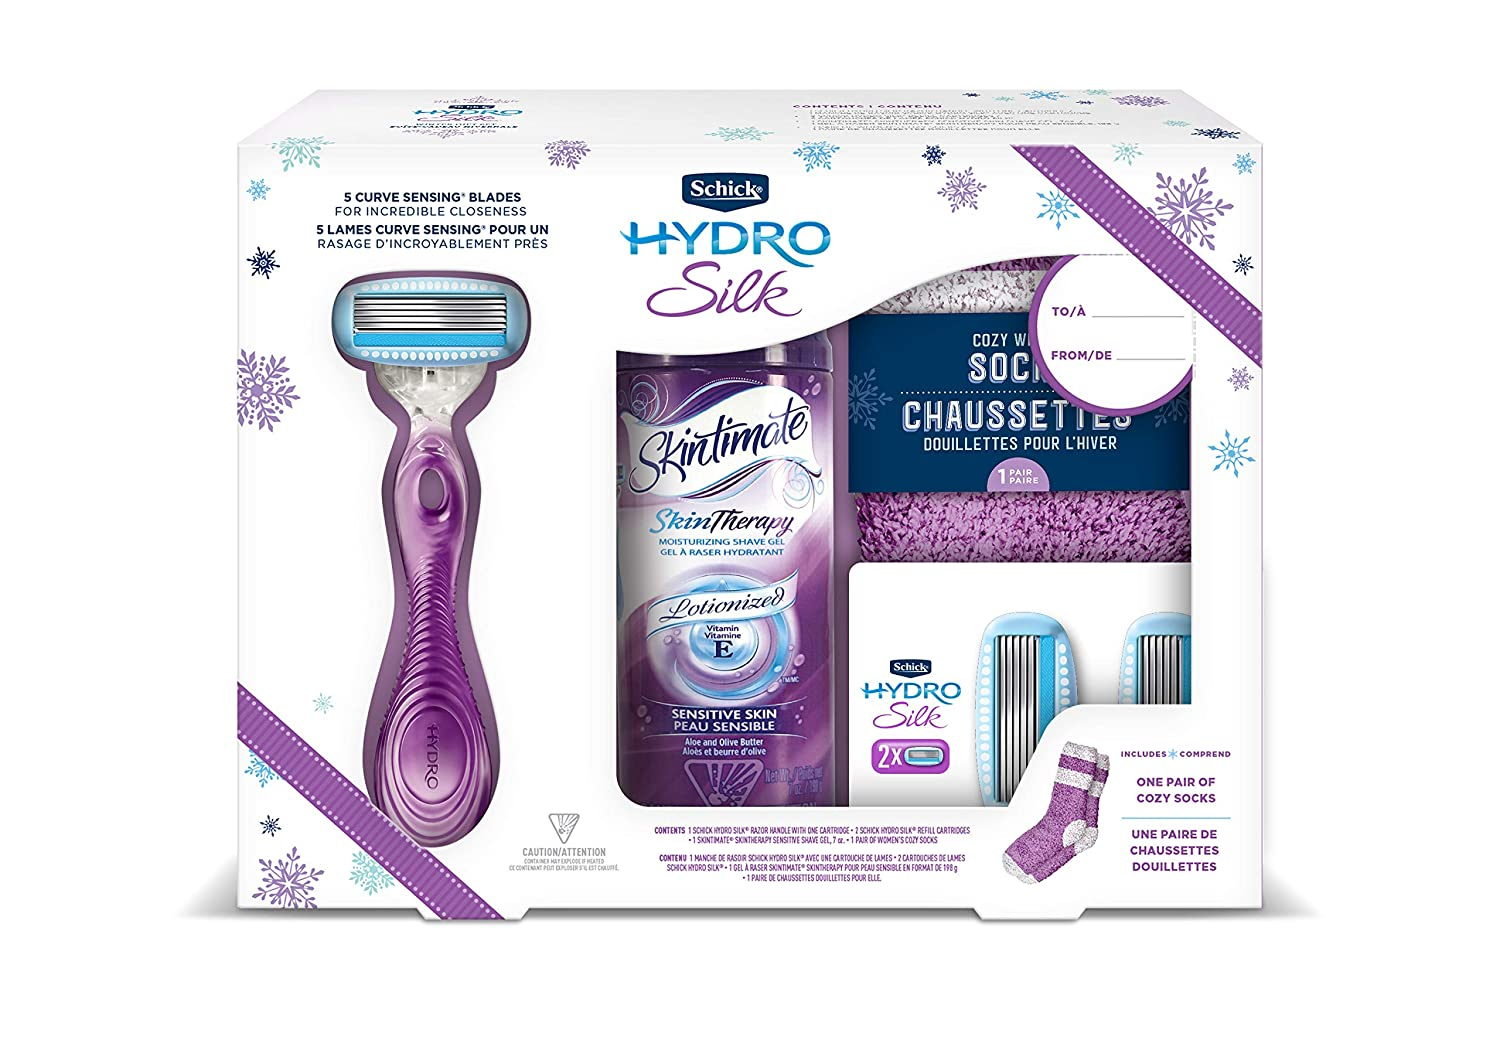 Schick Hydro Silk Razor Gift Set With 1 Hydro Silk Razor, 3 Hydro Silk Refills, 1 Skintimate Shave Gel, 1 Pair Of Cozy Socks, 0.54 Kilogram ENEST W301015902